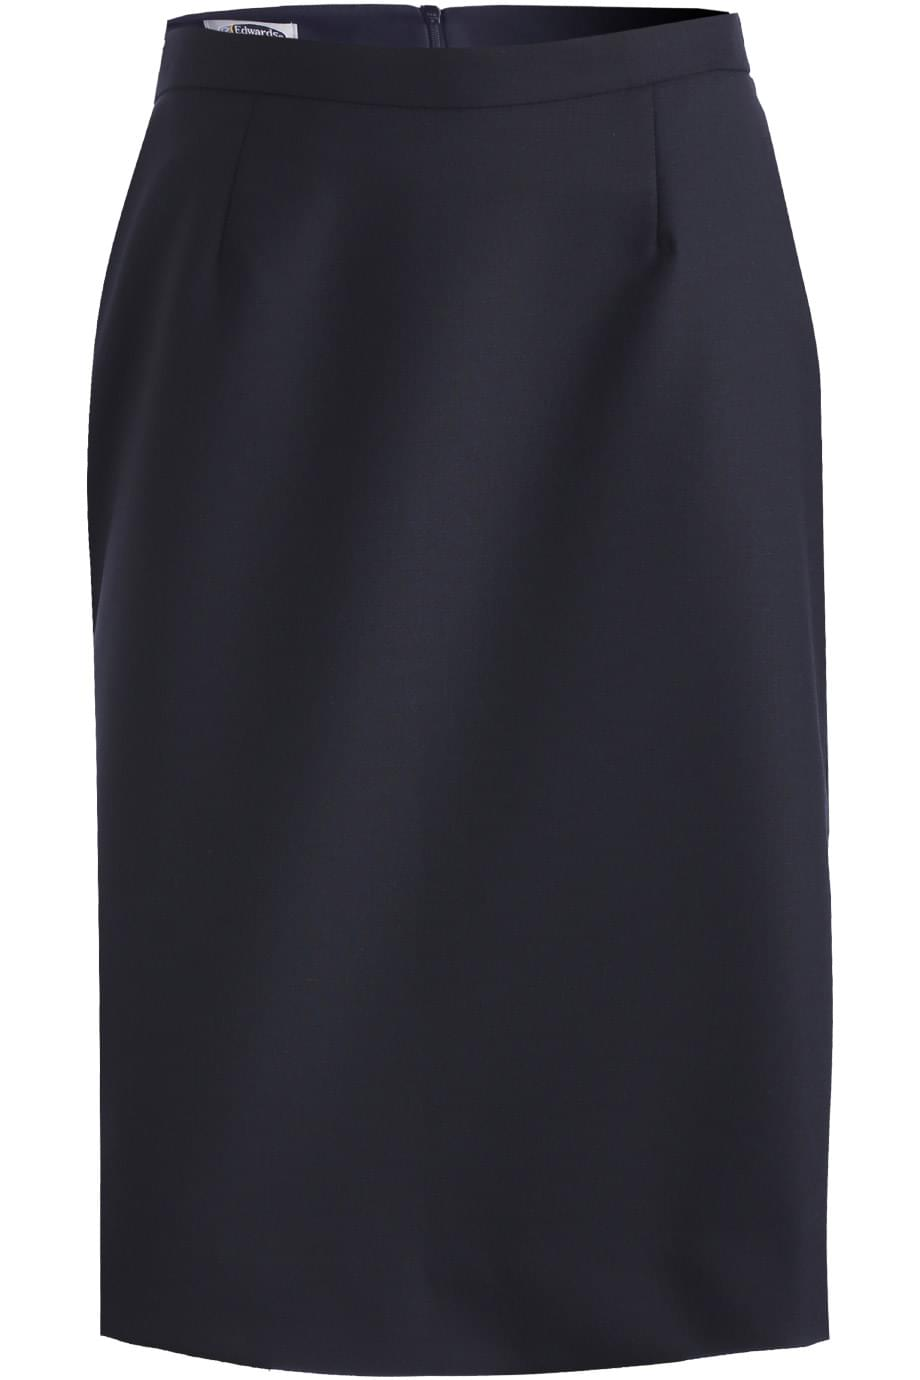 LADIES' STRAIGHT SKIRT WITH SIGNATURE FABRIC